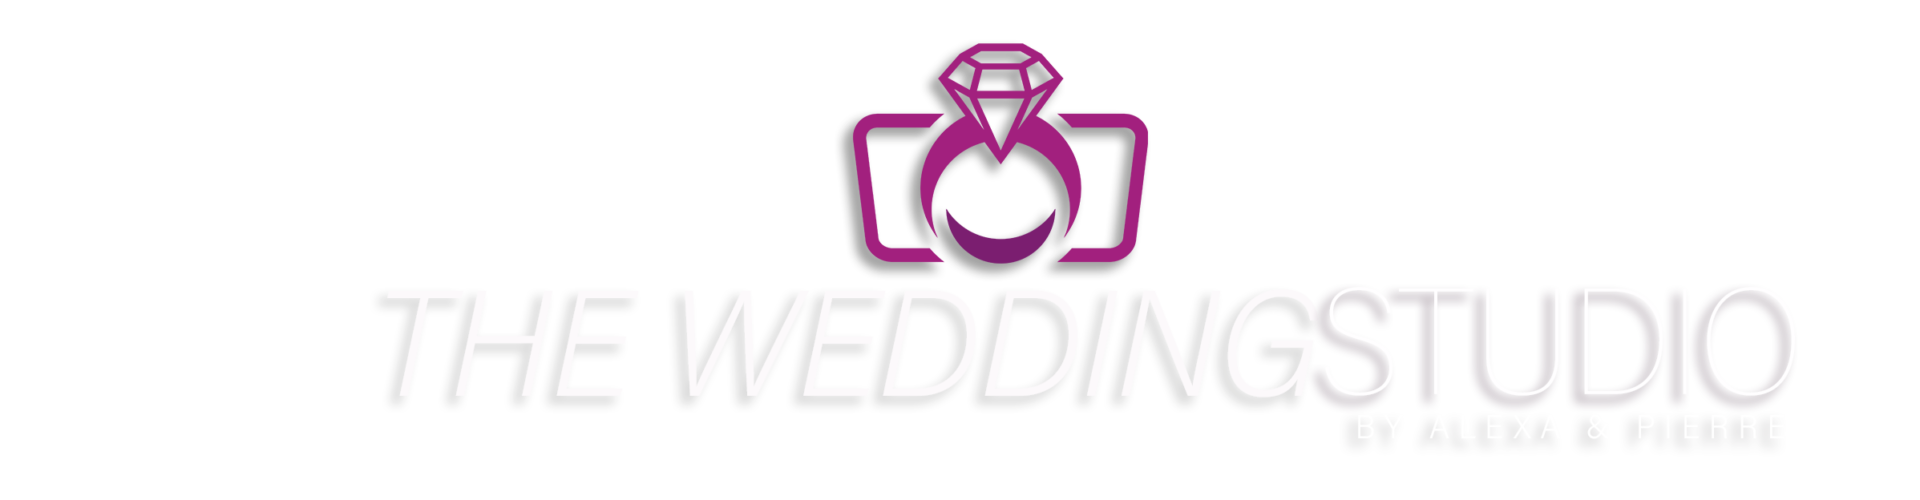 wedddingstudio CO.